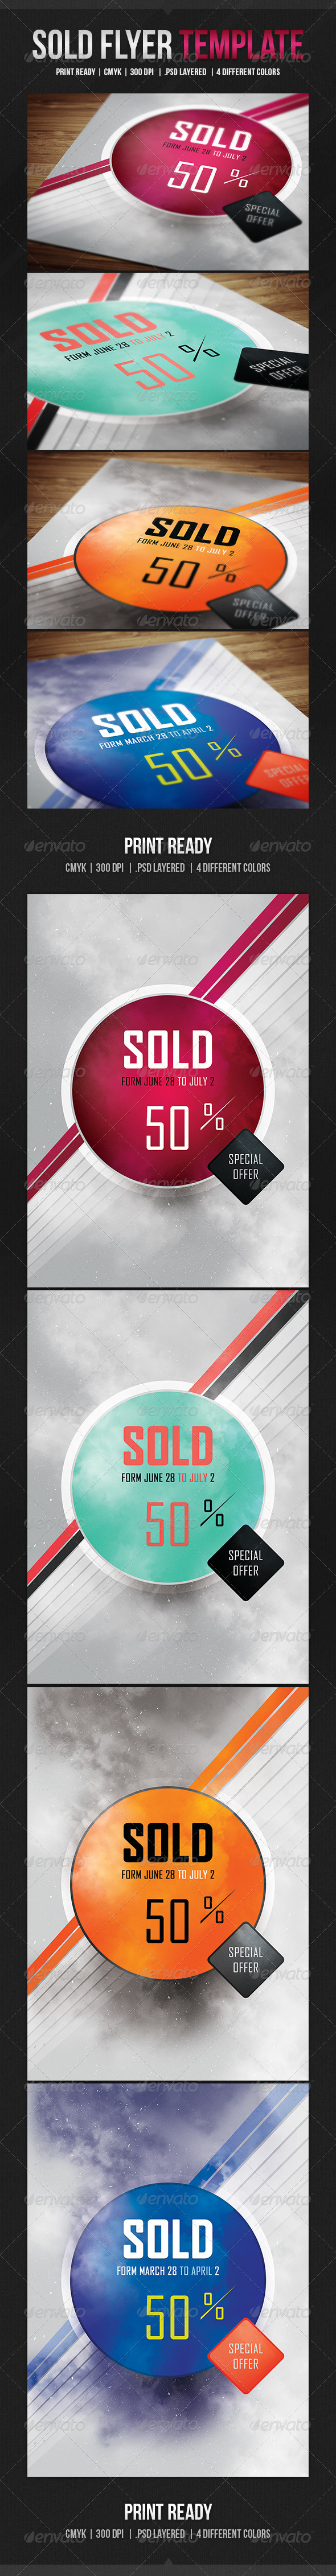 Sold Flyer Template - Commerce Flyers